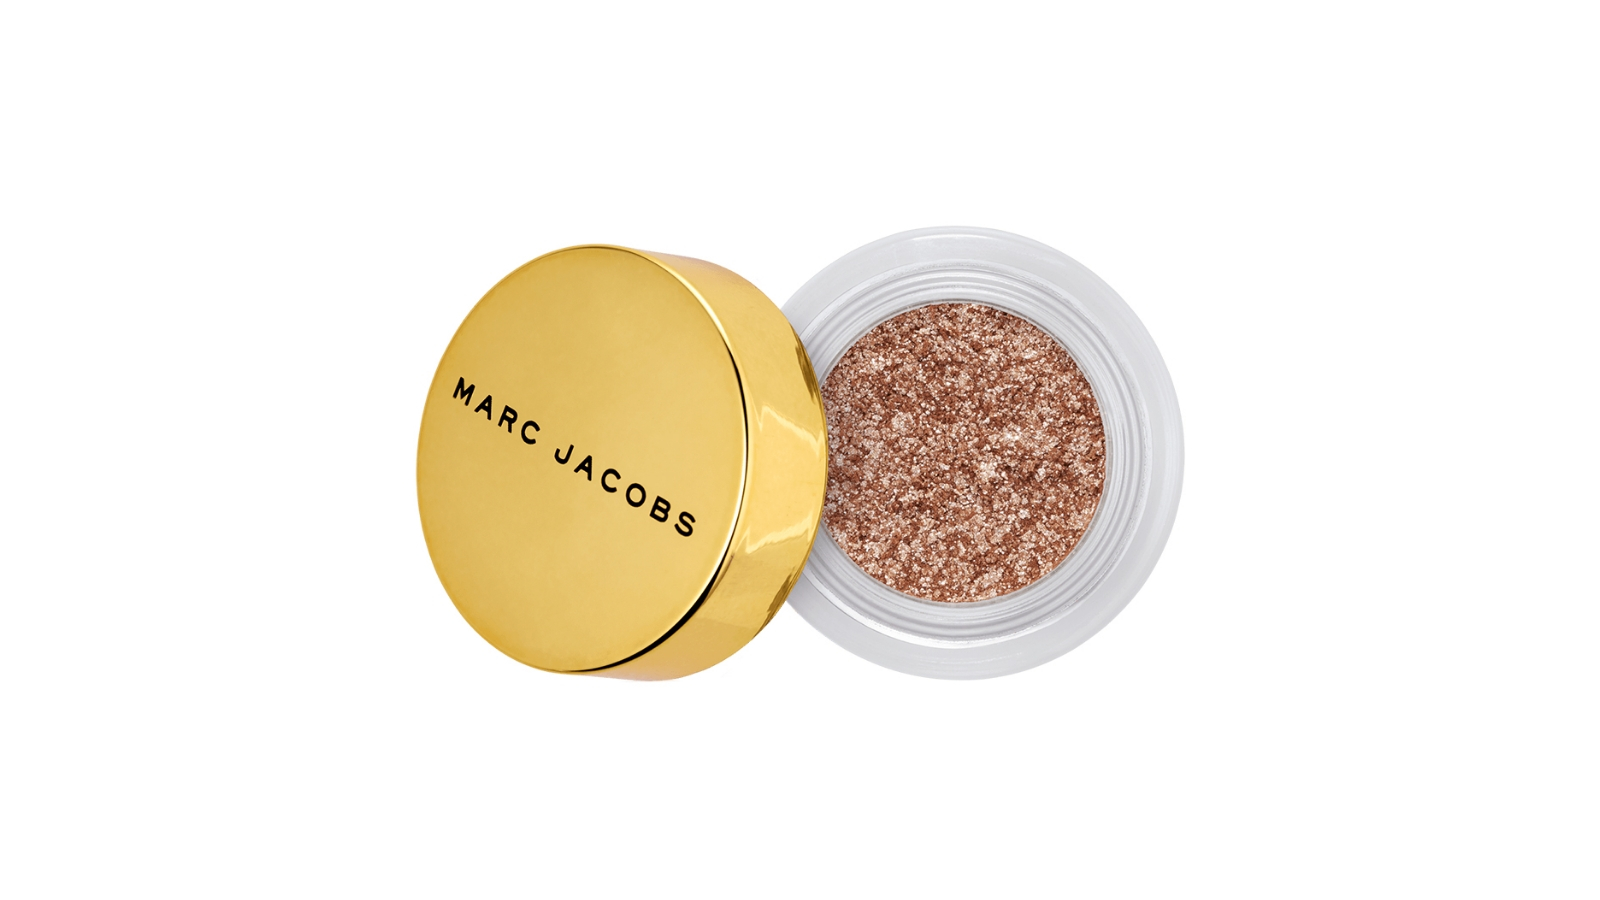 Marc Jacobs See-qiuns Glitter Glam Eyeshadow $36